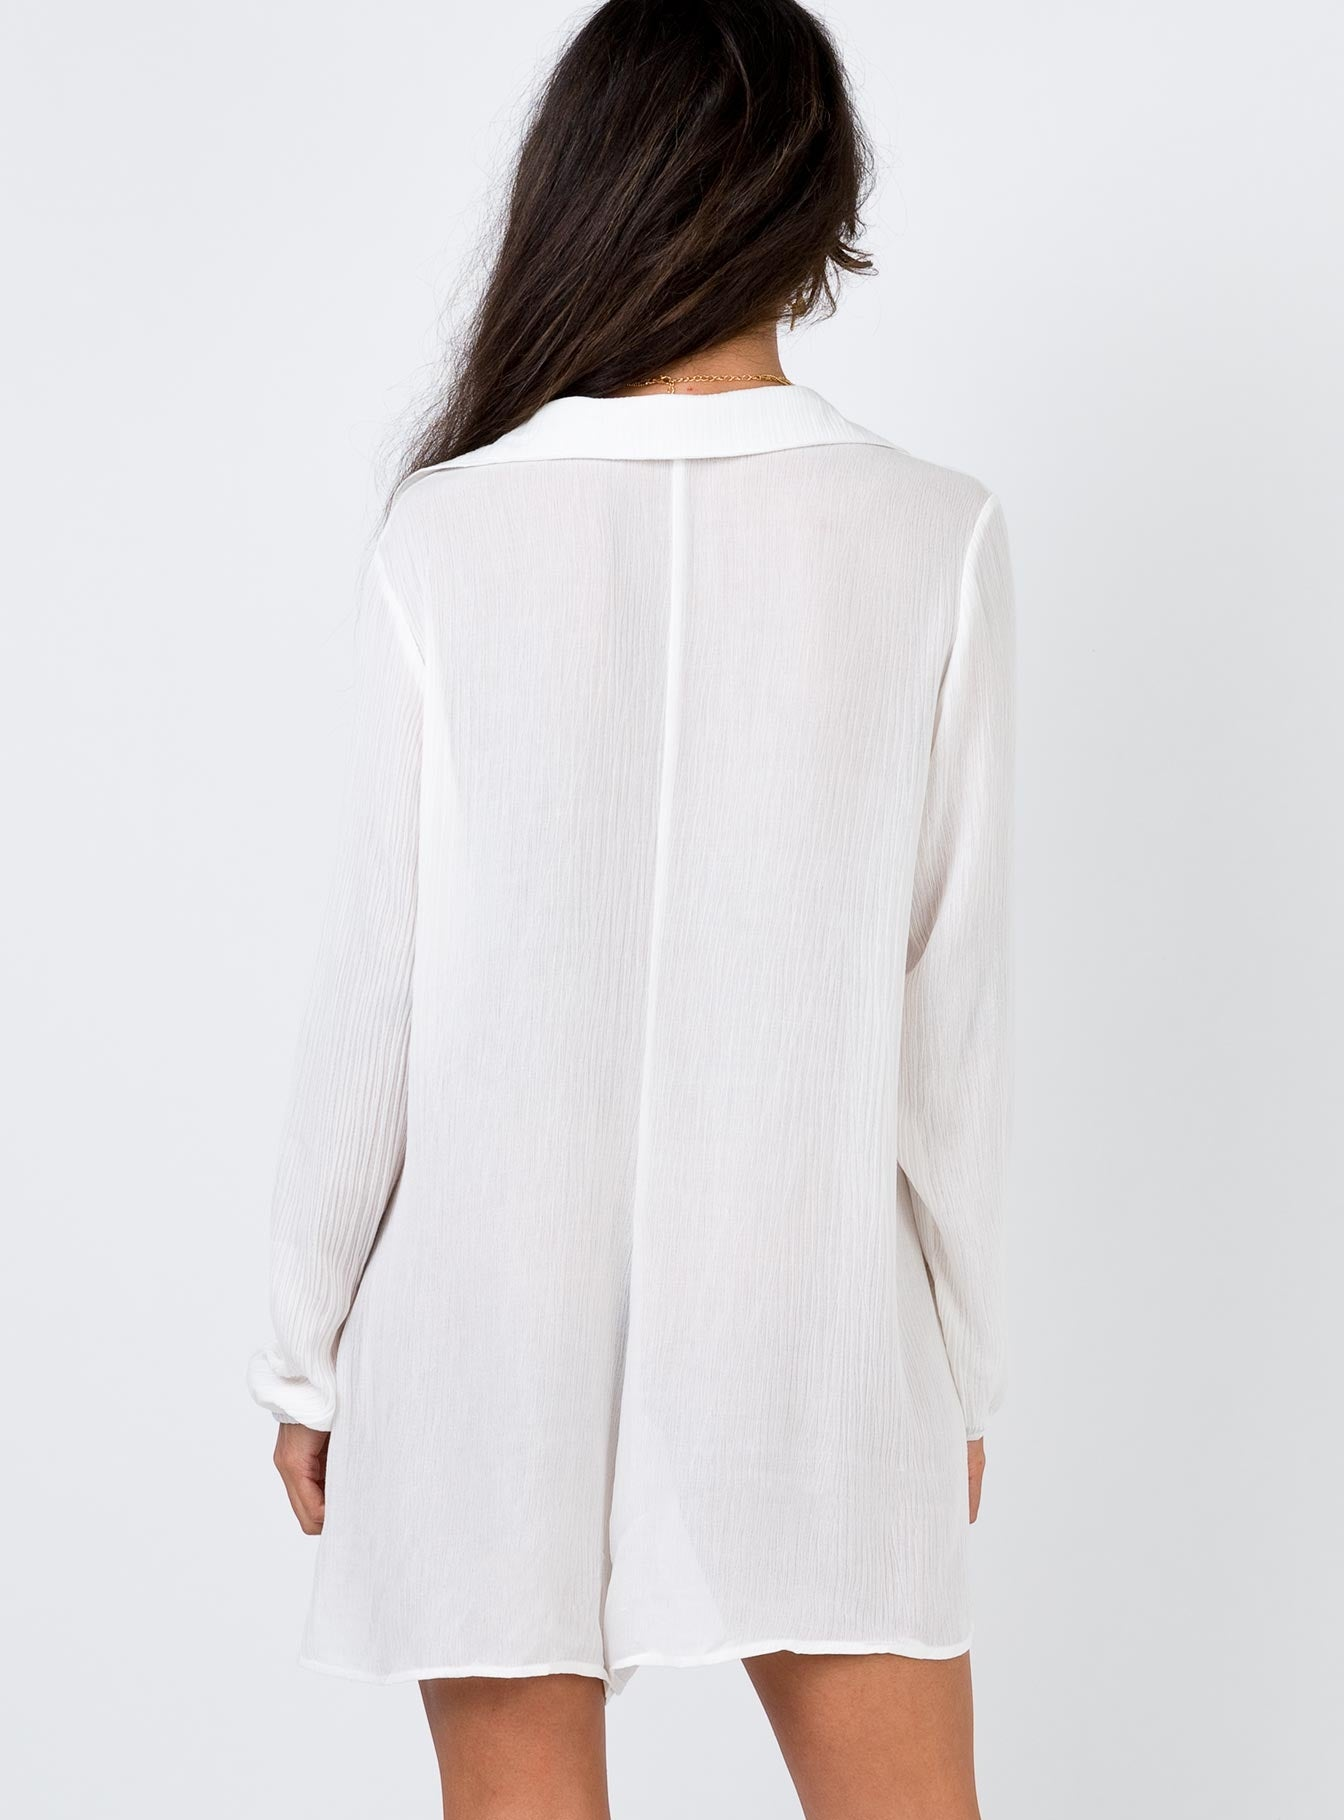 The Mali Playsuit White